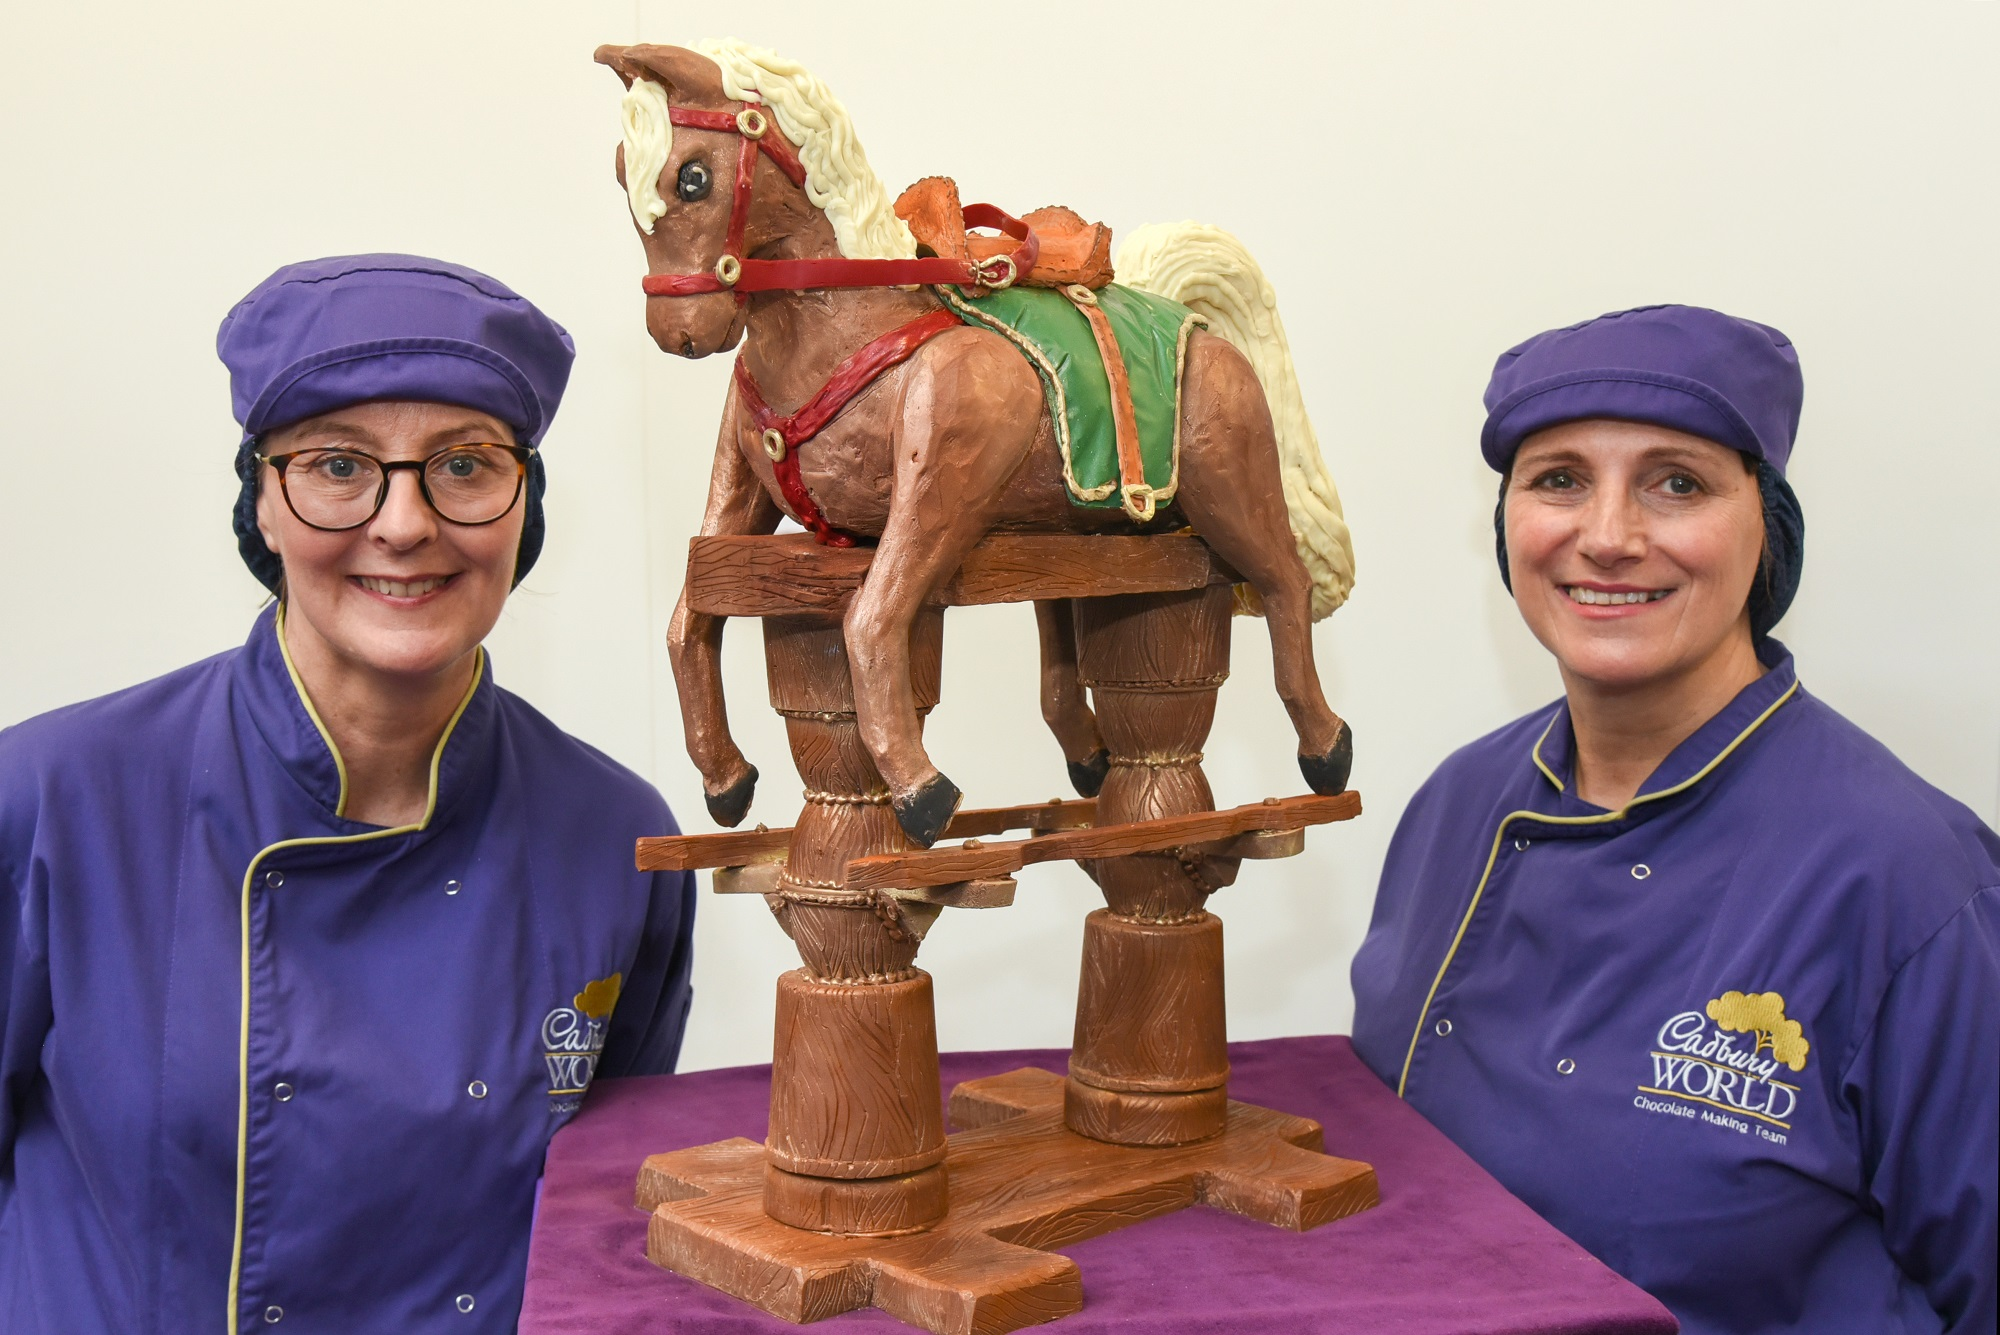 A chocolate rocking horse made for the arrival of the third baby for the Duke and Duchess of Cambridge (Cadbury's/PA)